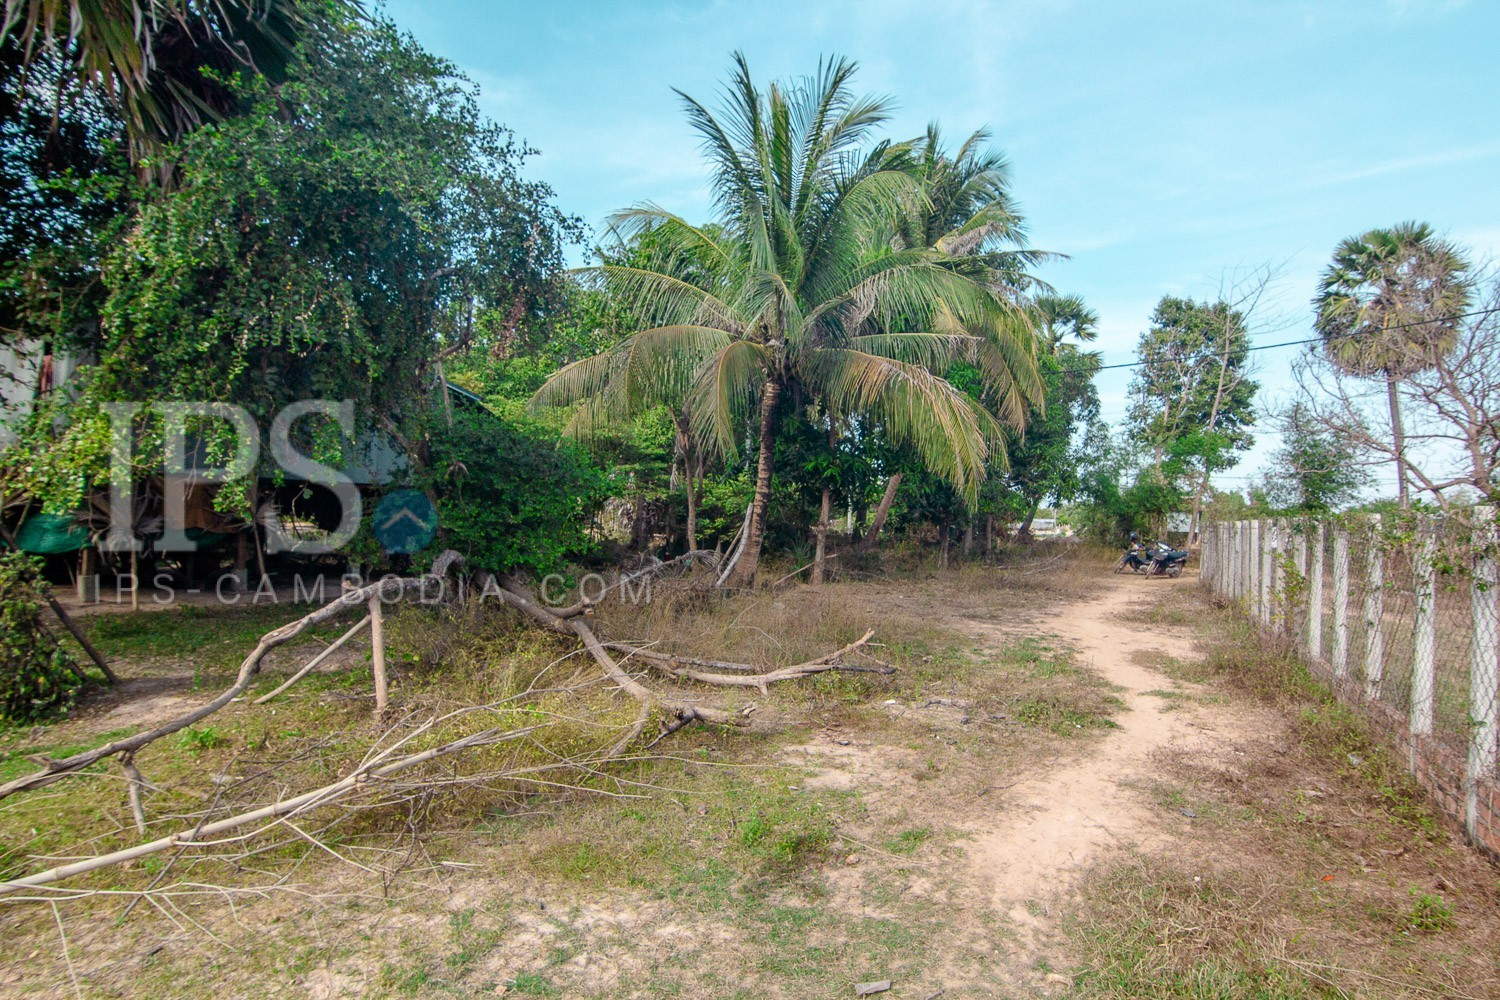 216 Sqm Residential Land For Sale - Sambour, Siem Reap